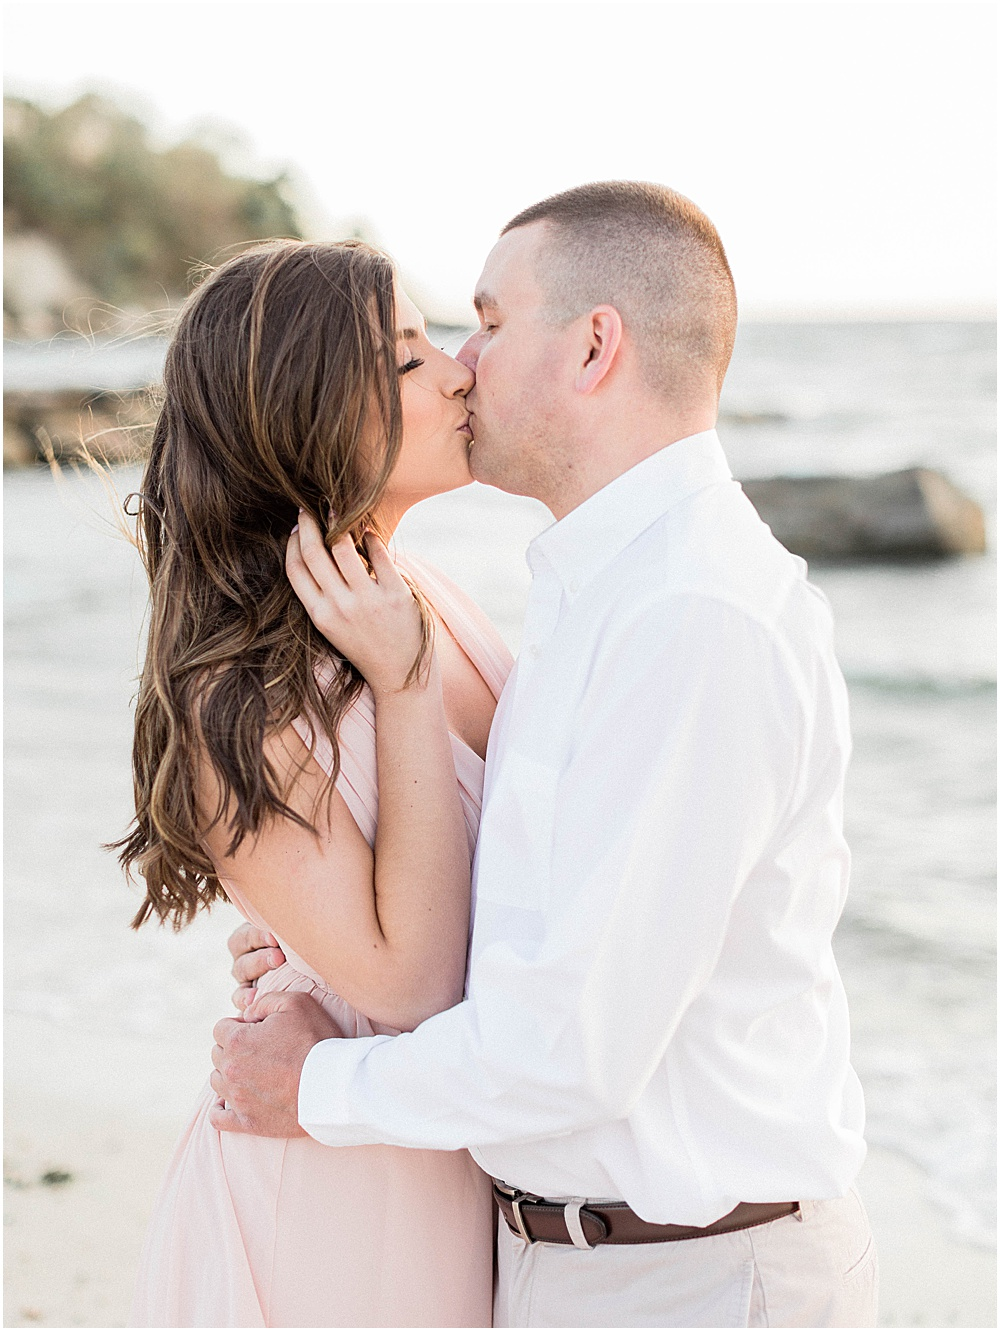 chartroom_old_silver_beach_seacrest_sunset_spring_engagement_session_boston_wedding_photographer_meredith_jane_photography_photo_0250.jpg